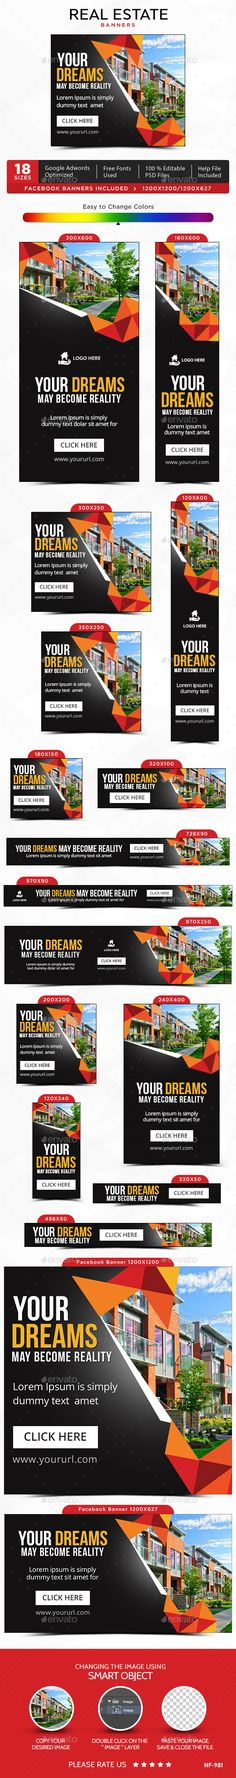 Real Estate Web Banners Design Template PSD #promote #ad Download: http://graphicriver.net/item/real-estate-banners/14391347?ref=ksioks